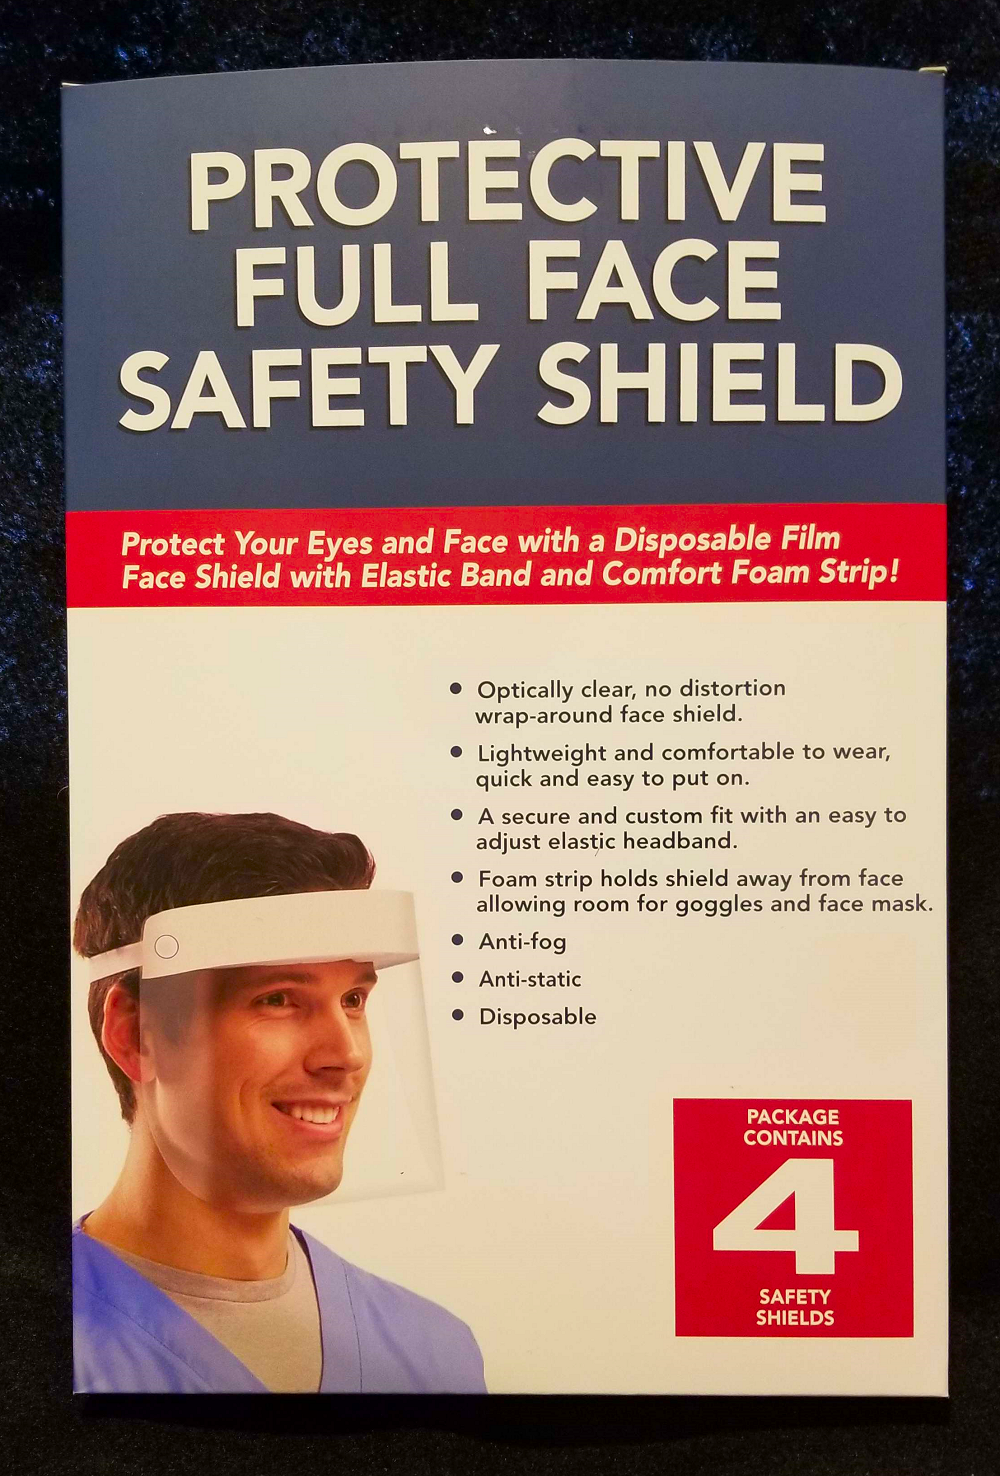 Full Face Safety Shield